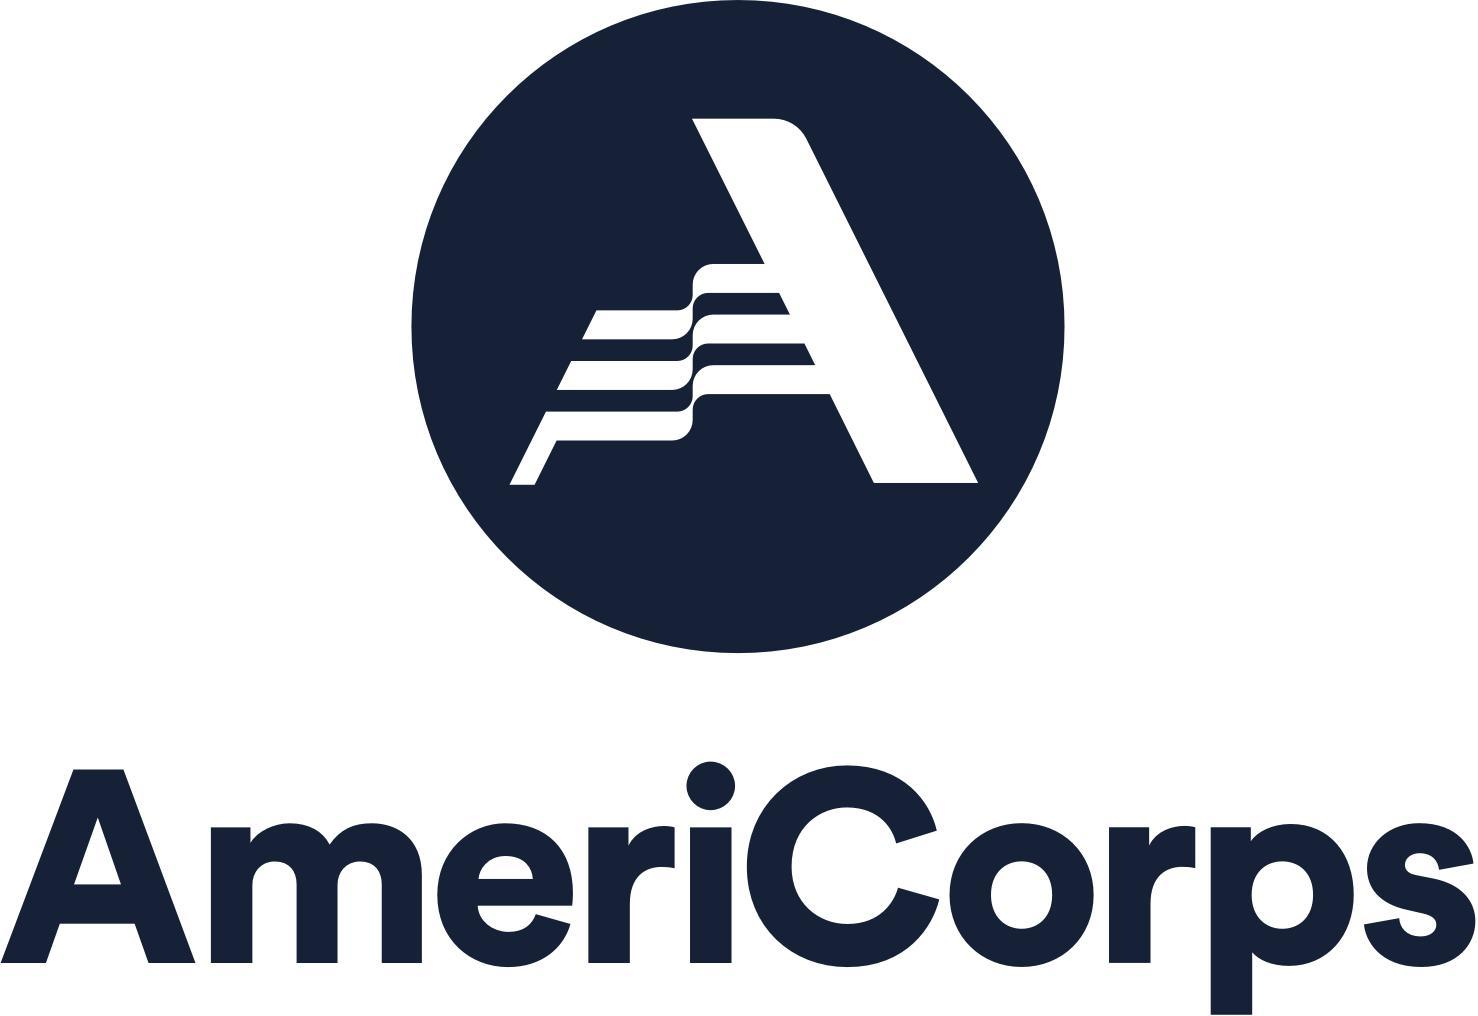 Americorp Logo -- A white A on a black circle background with AmeriCorp in bold below